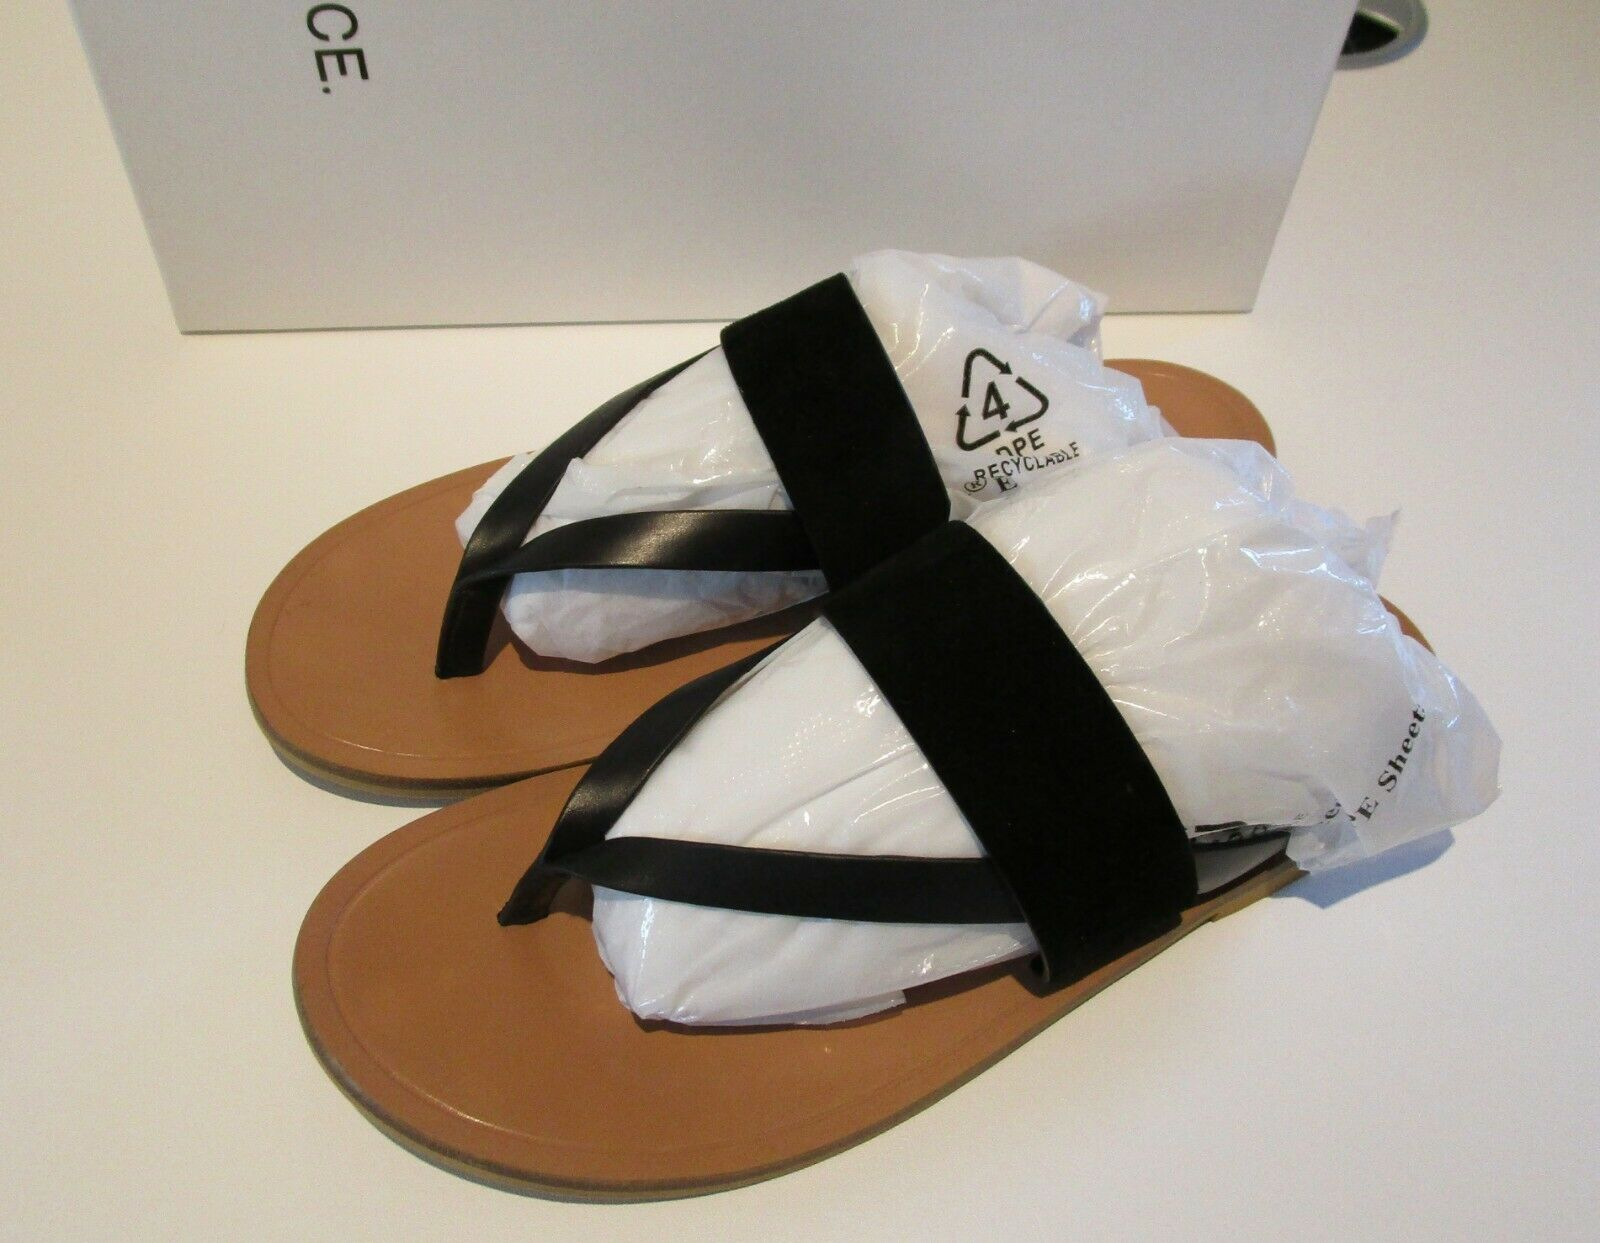 VINCE TESS Thong Sandals Sz 8 8 8 nero Suede Leather Sandal Thongs Worn ONCE ac2776